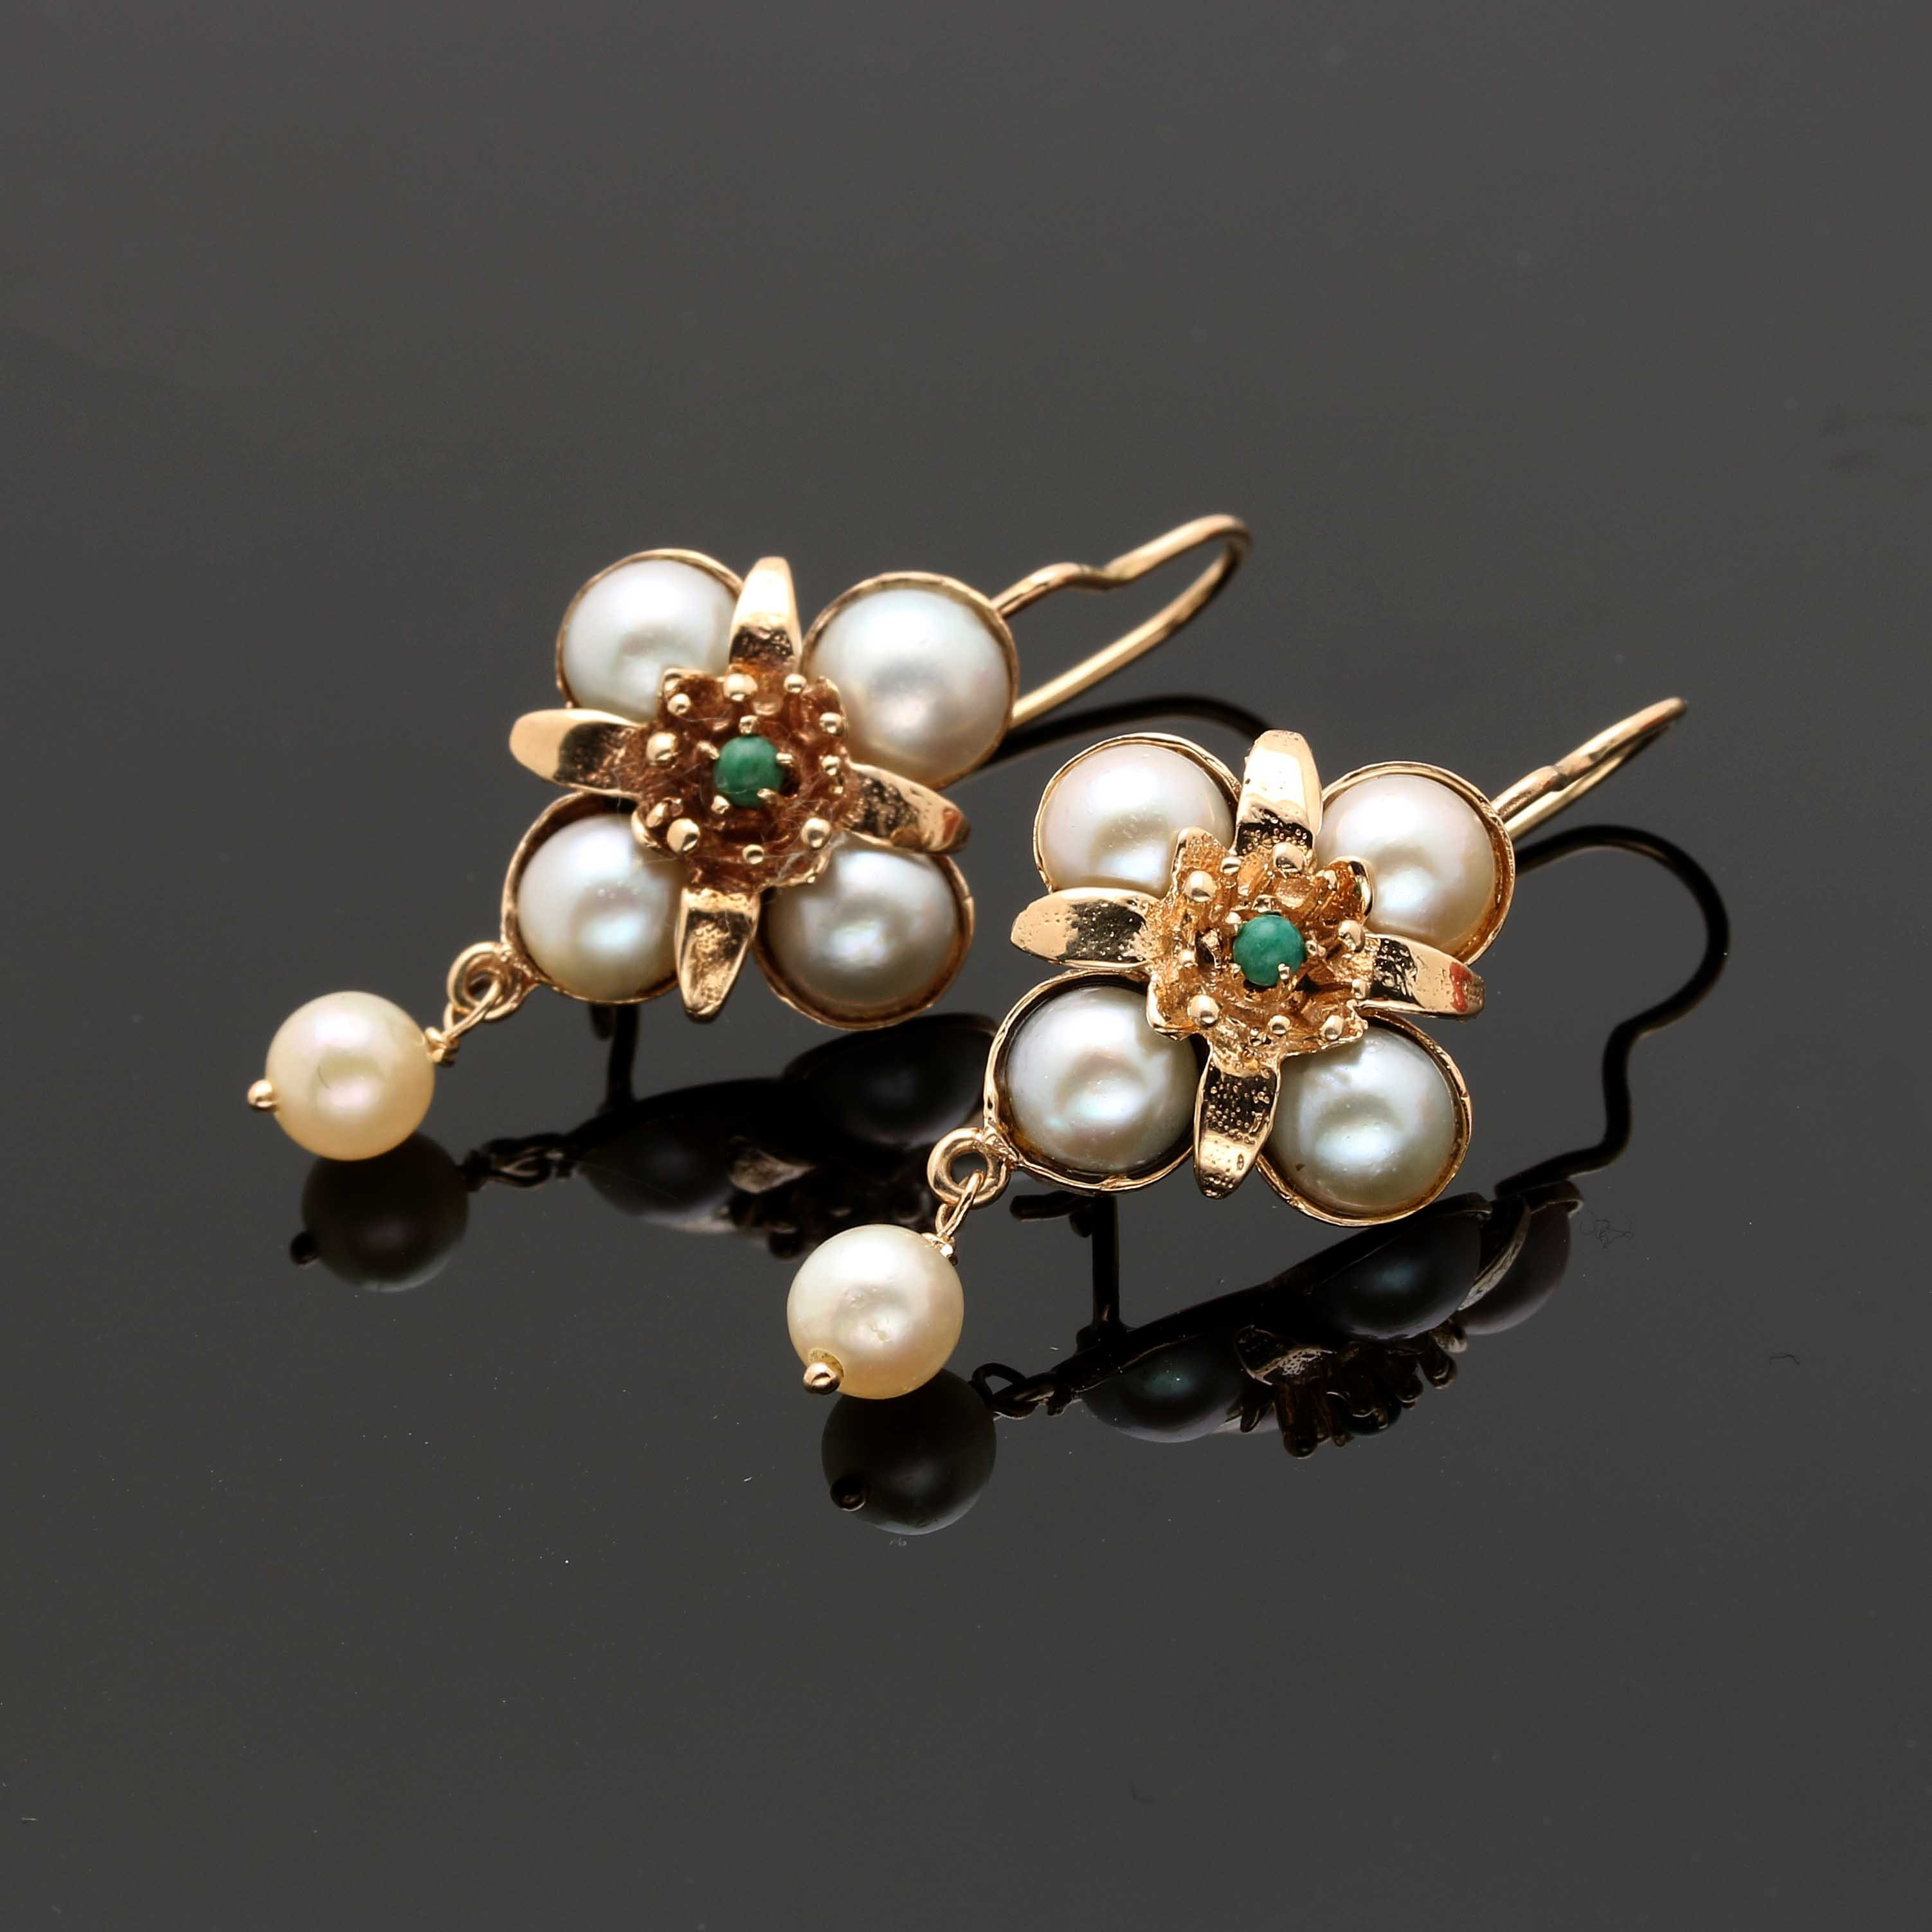 14K Yellow Gold Turquoise and Cultured Pearl Earrings